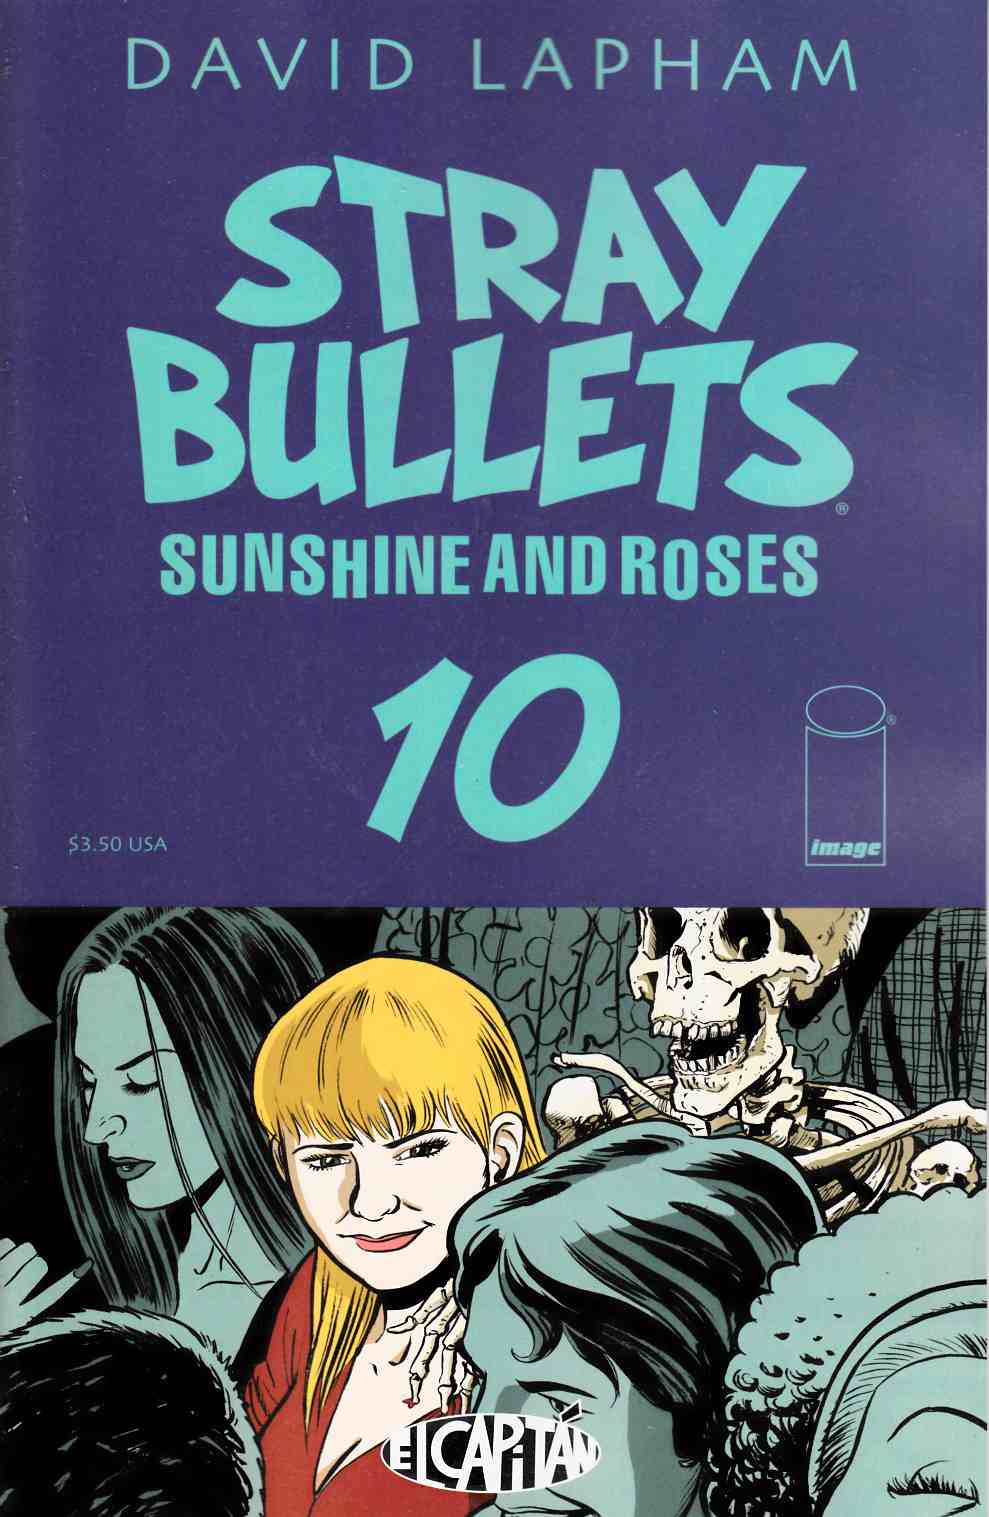 Stray Bullets Sunshine & Roses #10 [Image Comic] LARGE